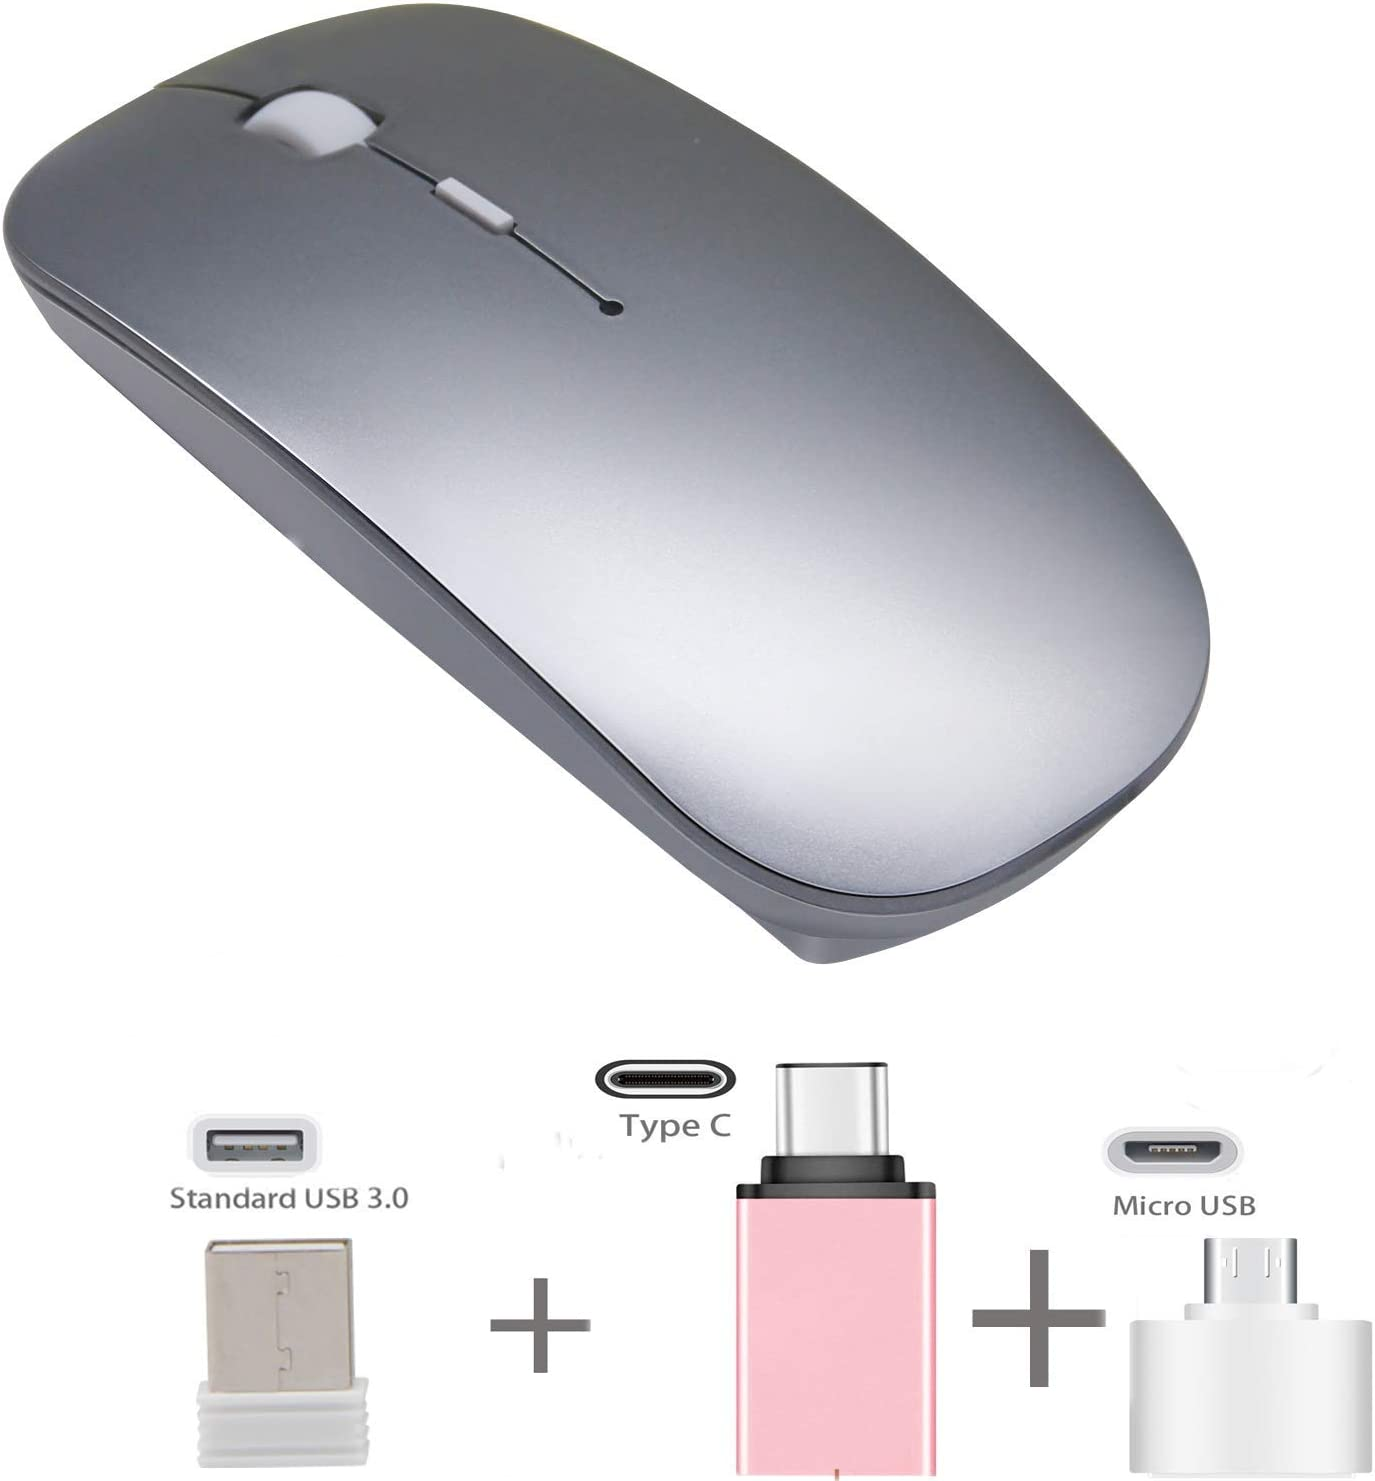 Silent Wireless Mouse for MacBook Desktop PC Lucky Tree Tsmine Wireless Computer Mouse Rechargeable Notebook 2.4GHz Portable USB Mouse Optical Mouse with Nano USB Receiver Laptop